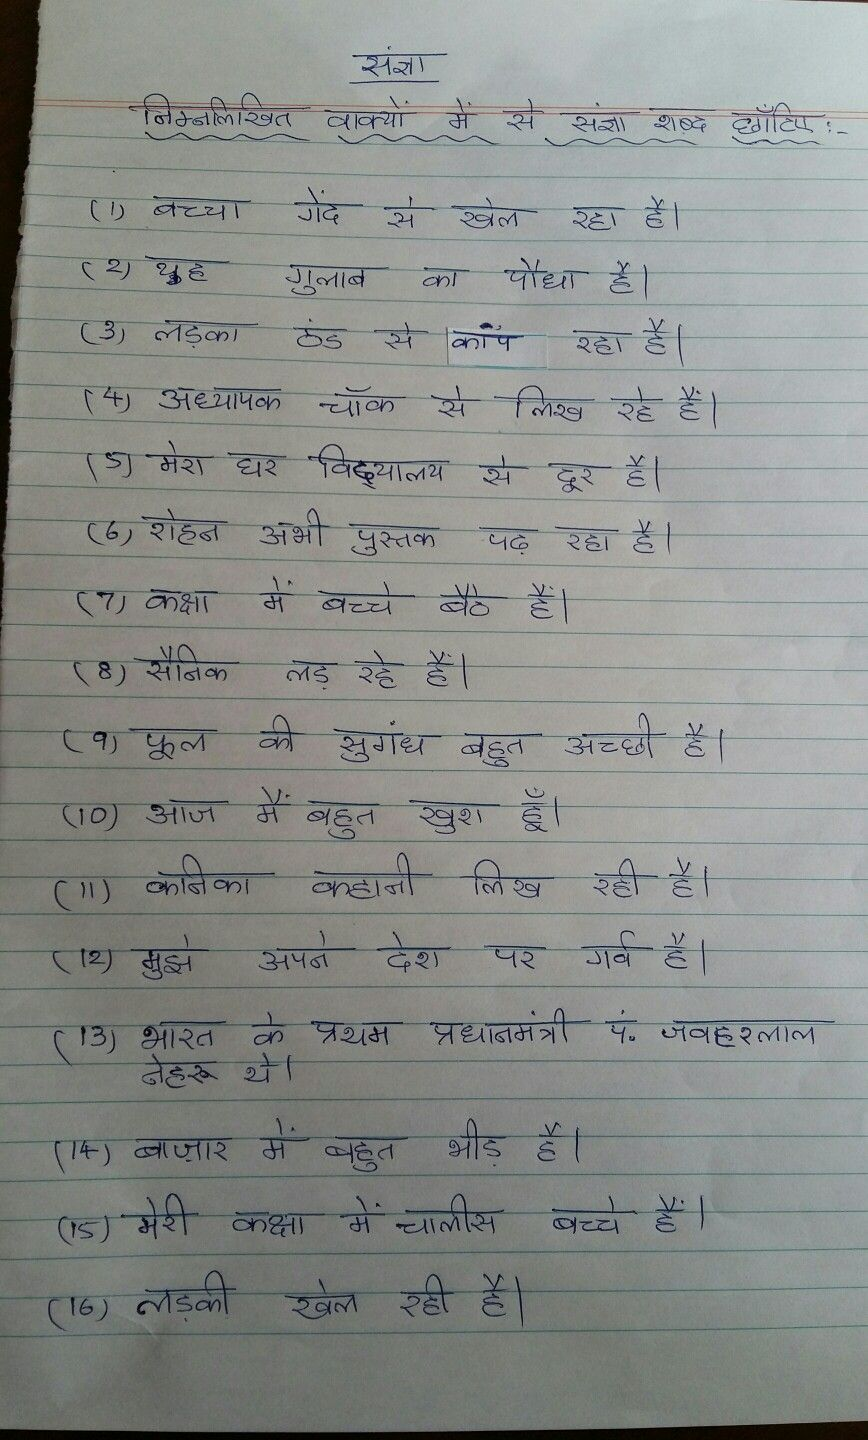 Hindi grammar SANGYA worksheets worksheets for school